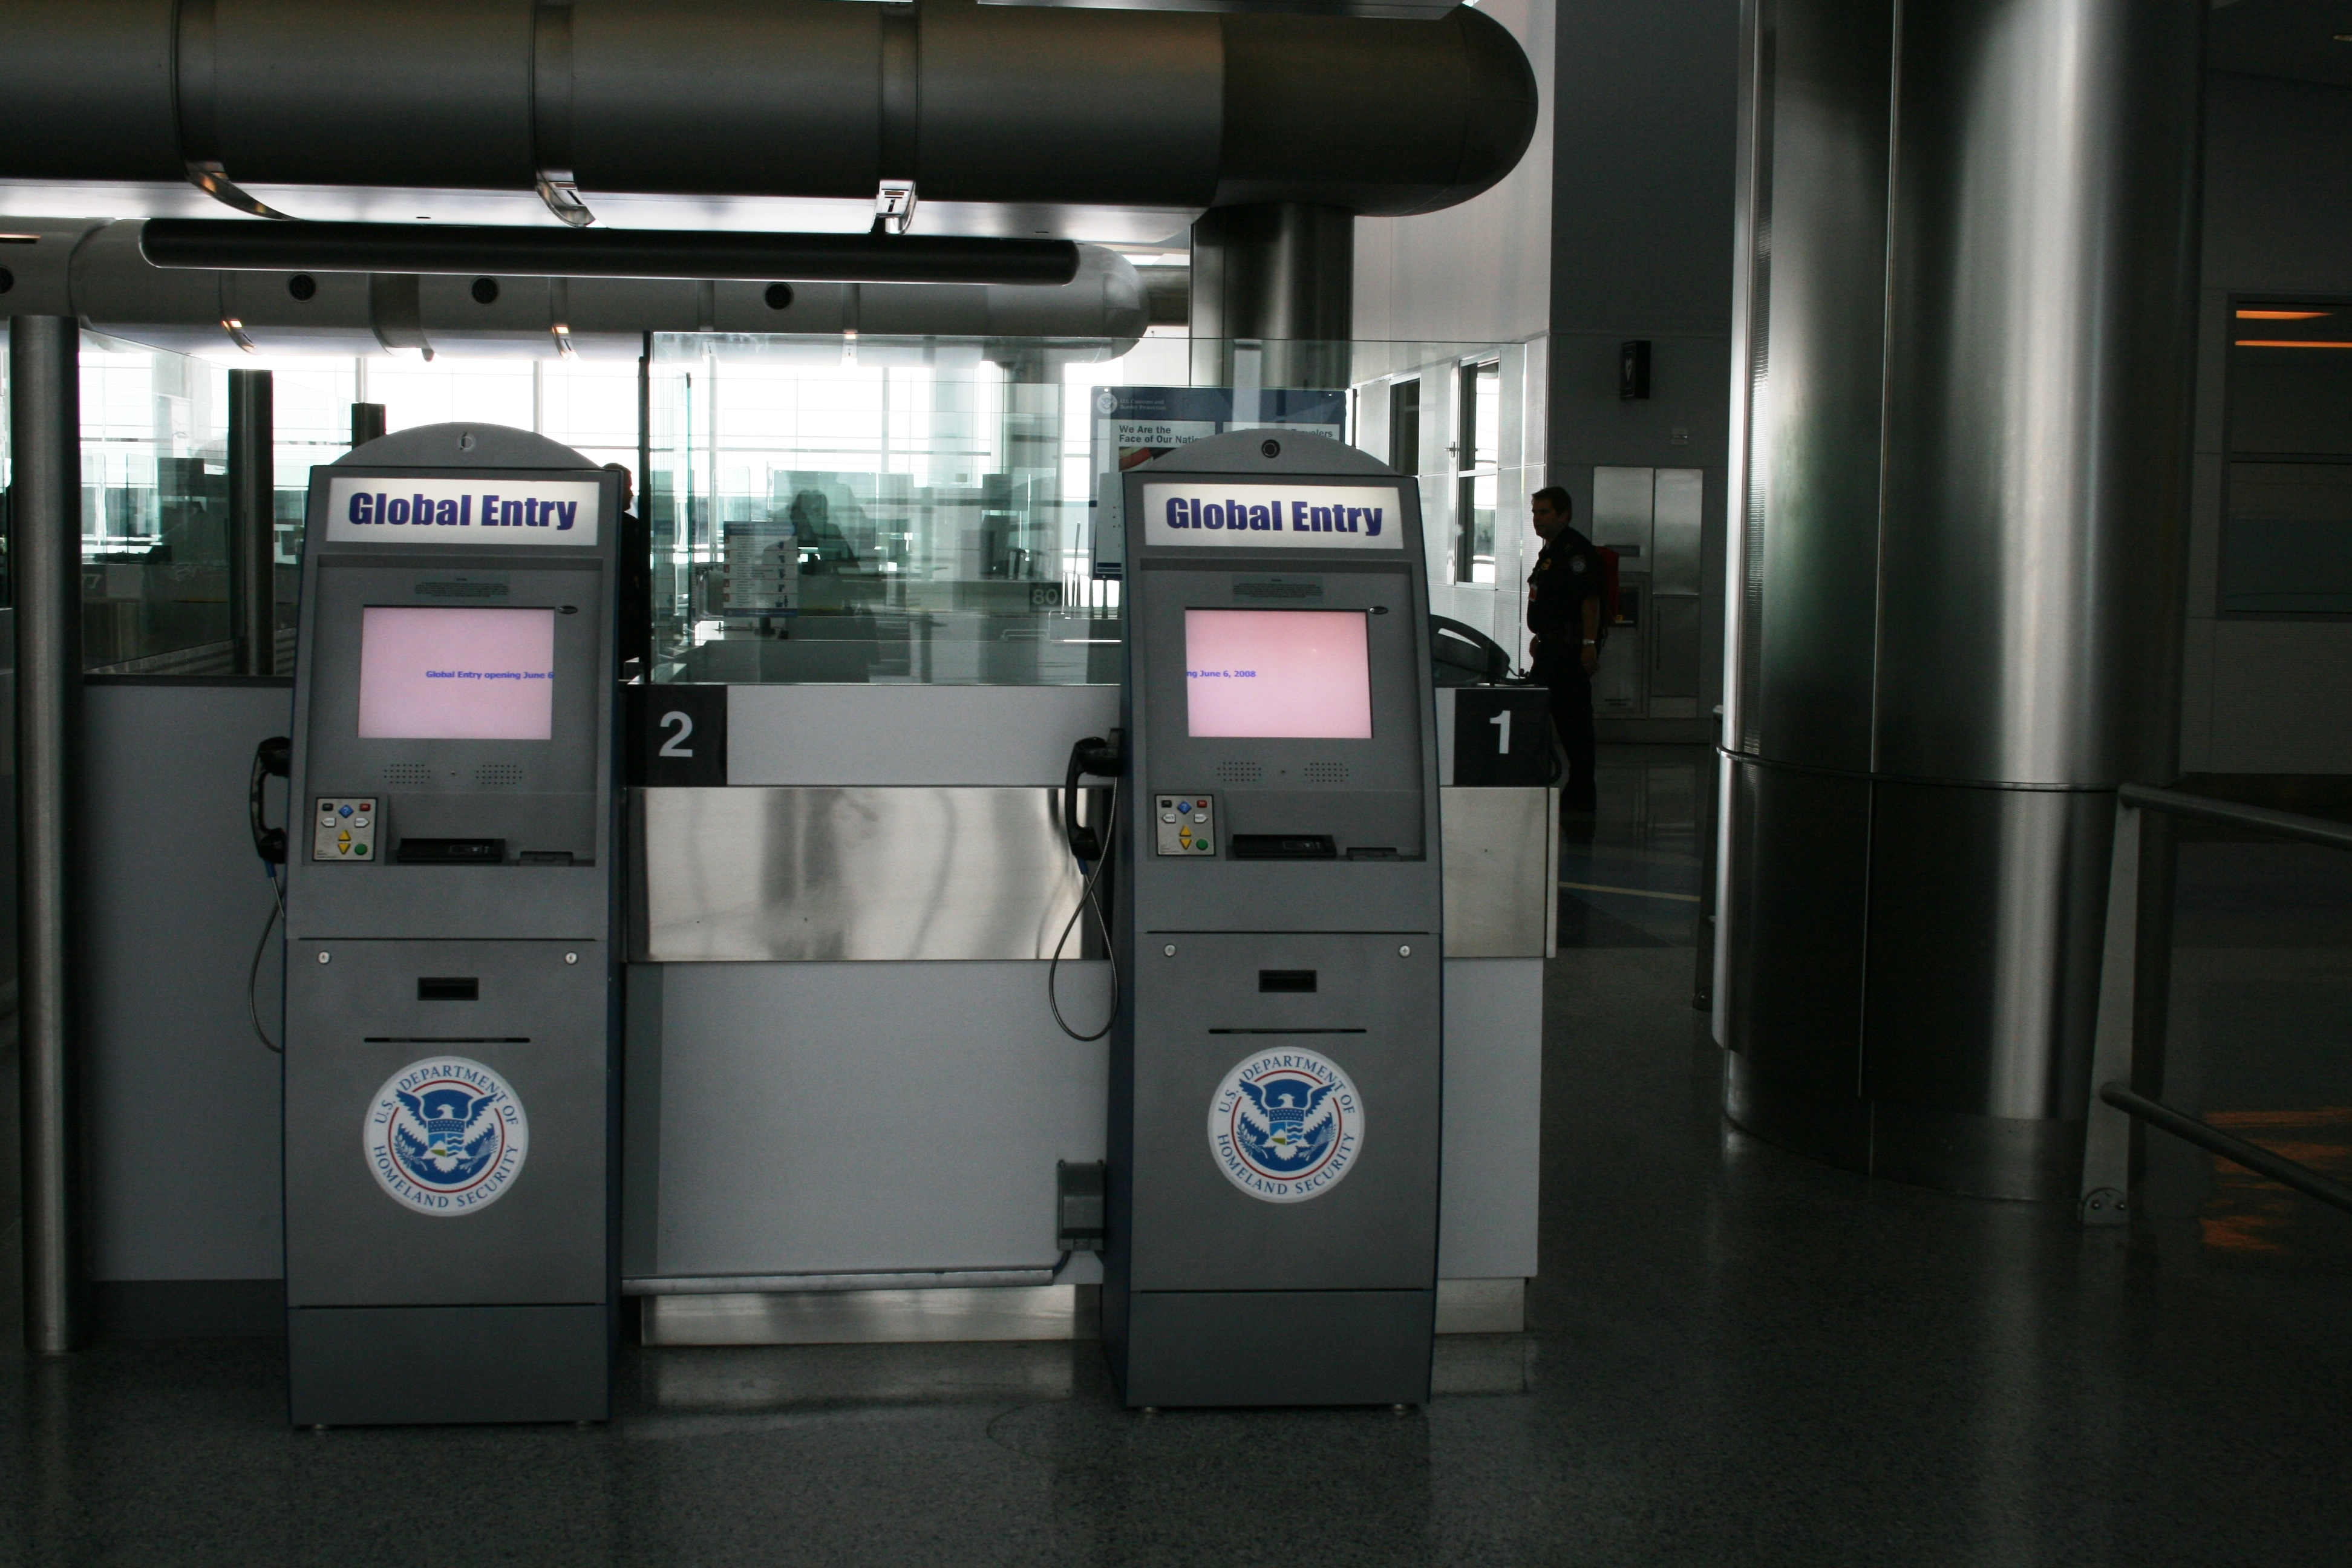 Global Entry Kiosks At The Houston George Bush Intercontinental Airport  (department Of Homeland Security Photo)